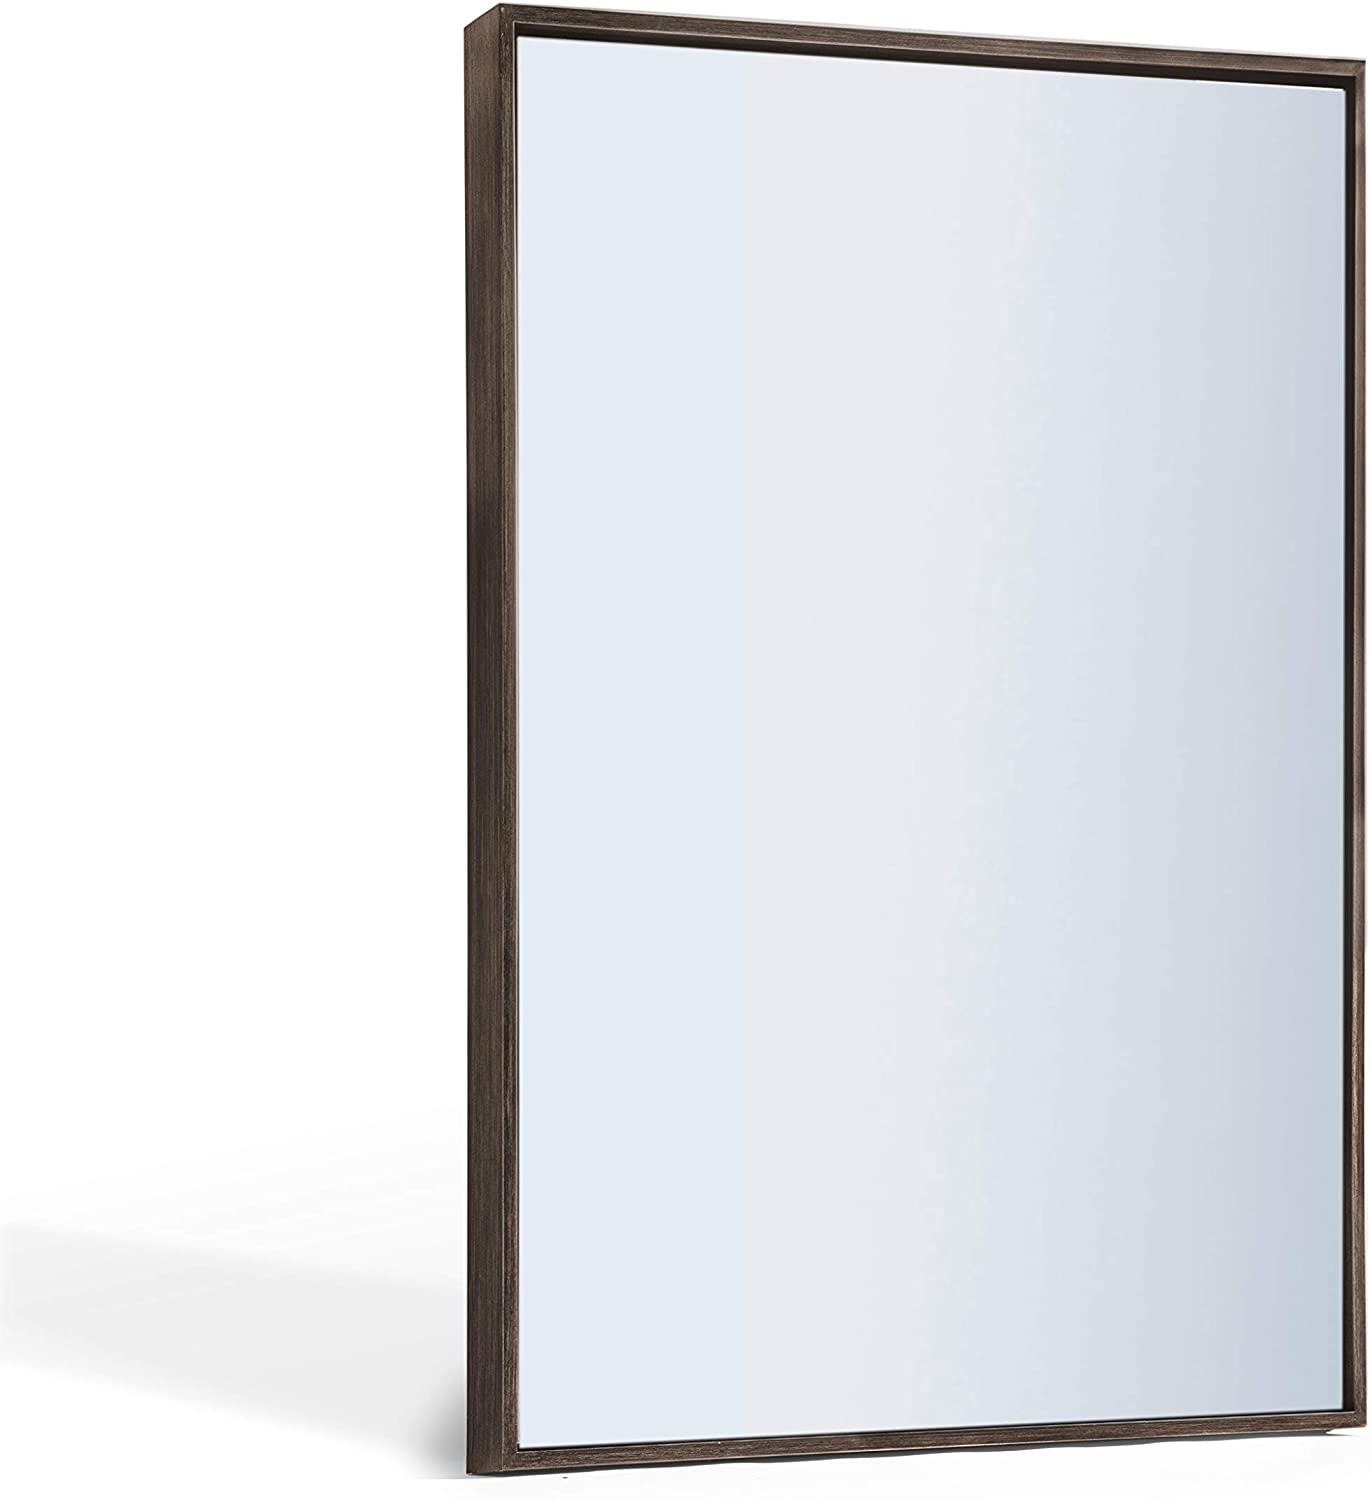 ANDY STAR Farmhouse Bathroom Mirror, Large Rustic Walnut Wall Mirror | 22-x30-Inch Contemporary Premium Silver Backed Floating Glass Panel | Mirrored Rectangle Hangs Horizontal or Vertical